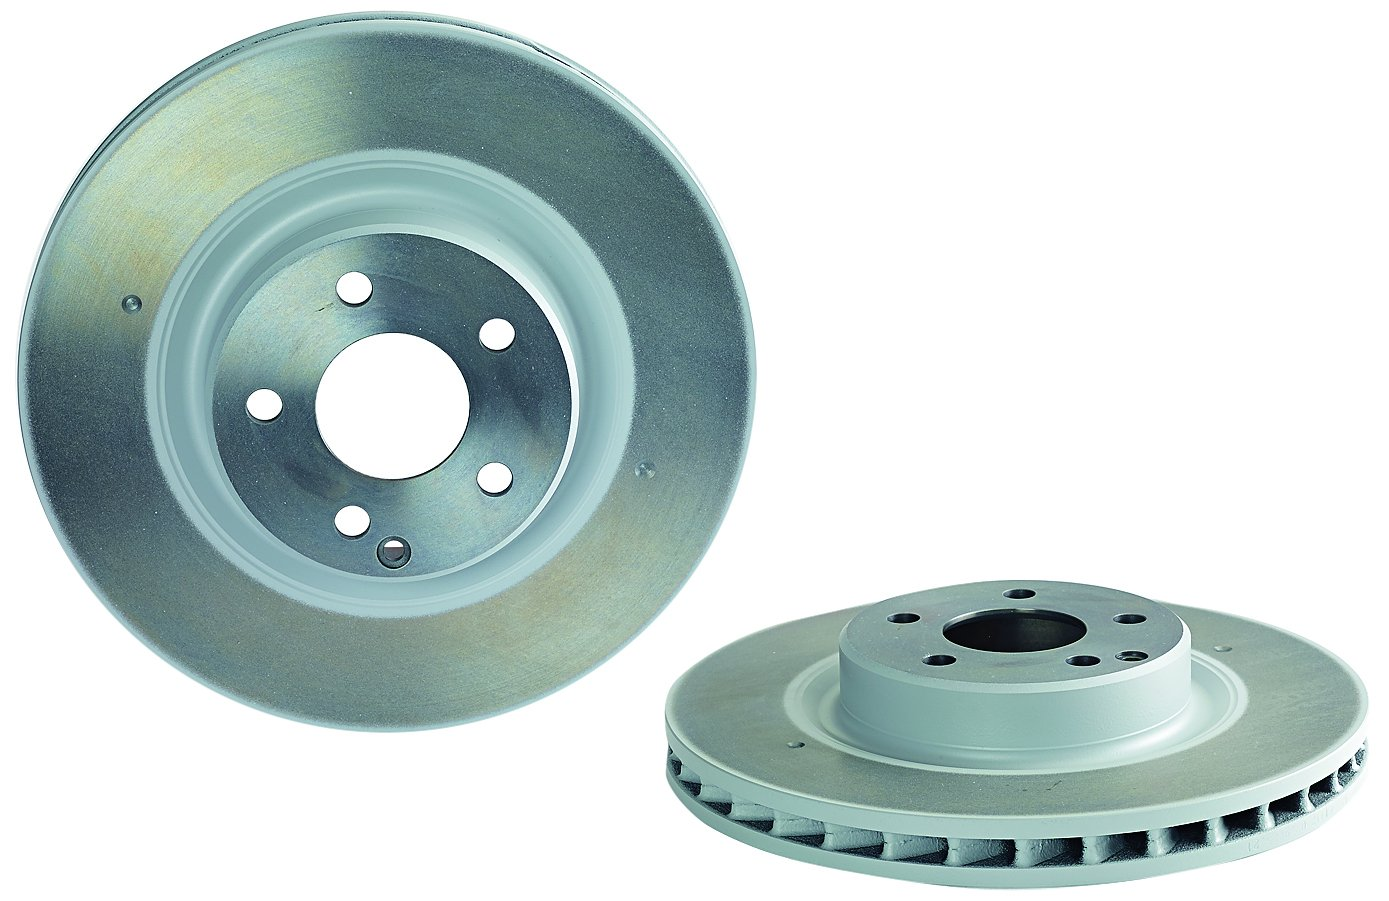 Brembo 09.9825.21 COATED DISC LINE Bremsscheibe 1 St/ück